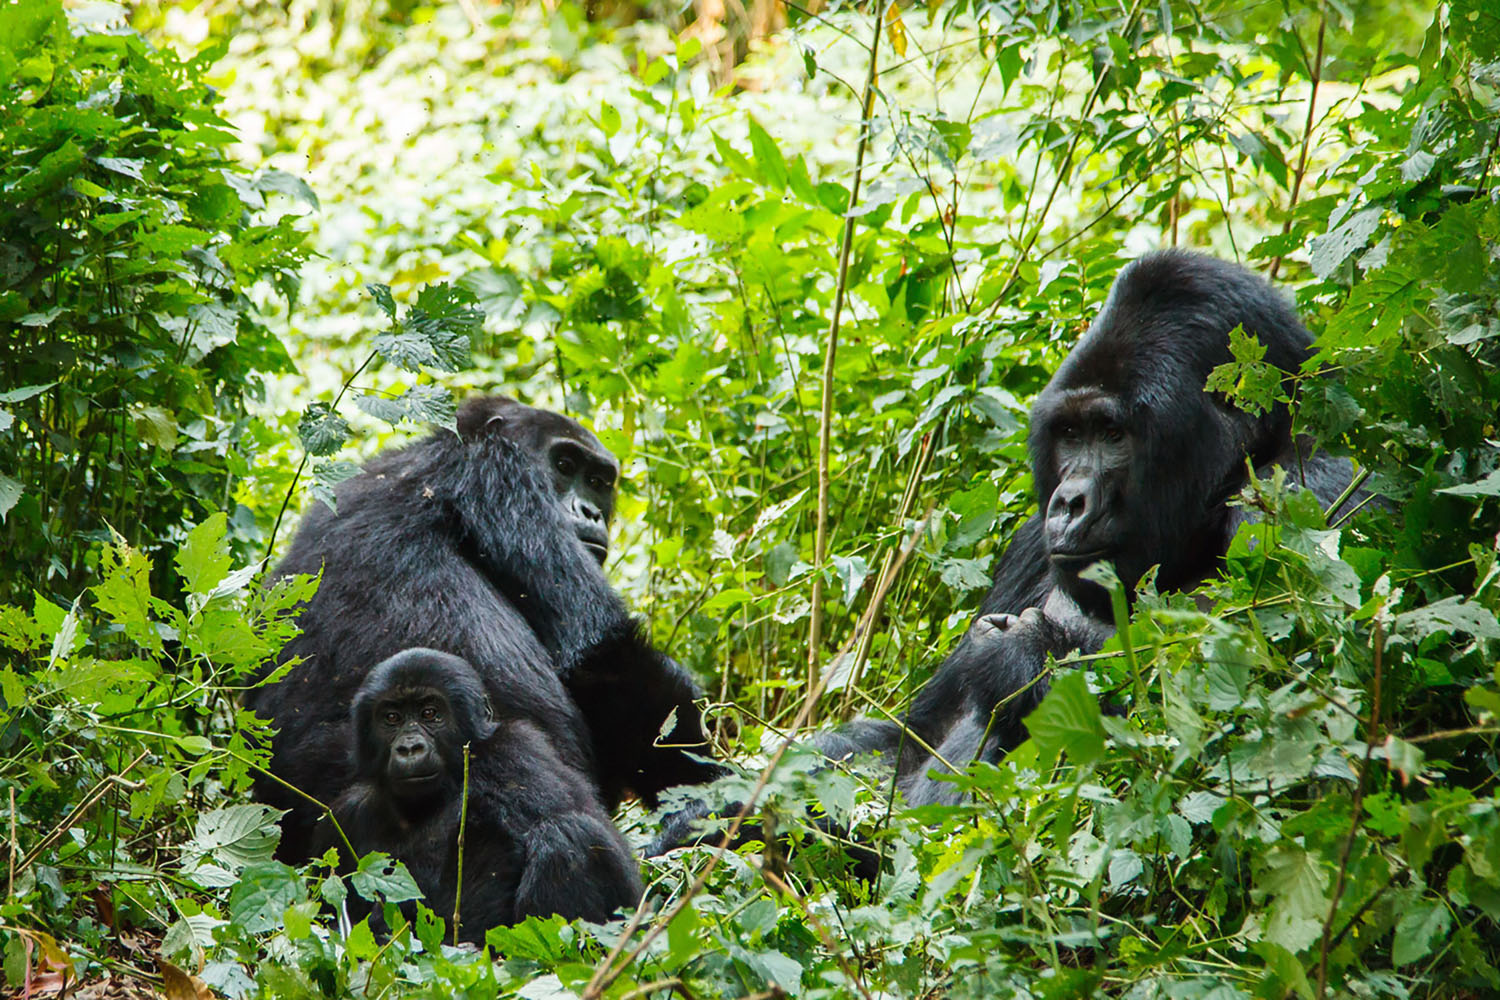 A family of silverback gorillas in the forest.